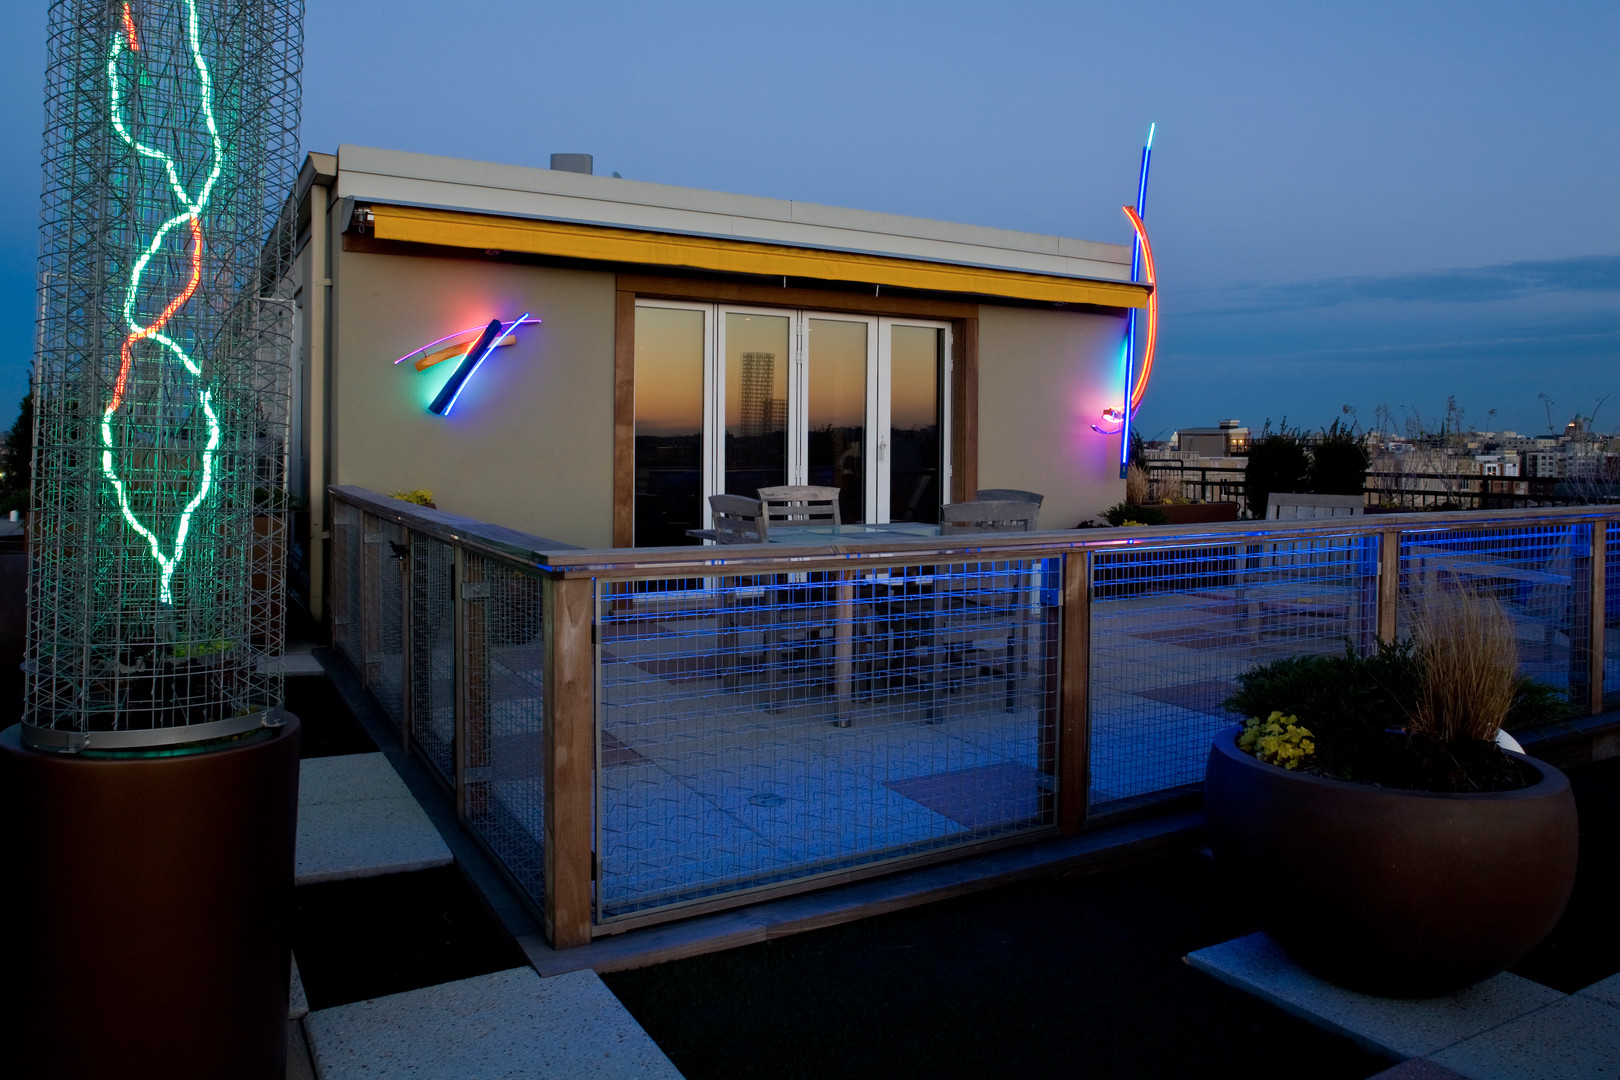 Lightwinds with Echo, 2007